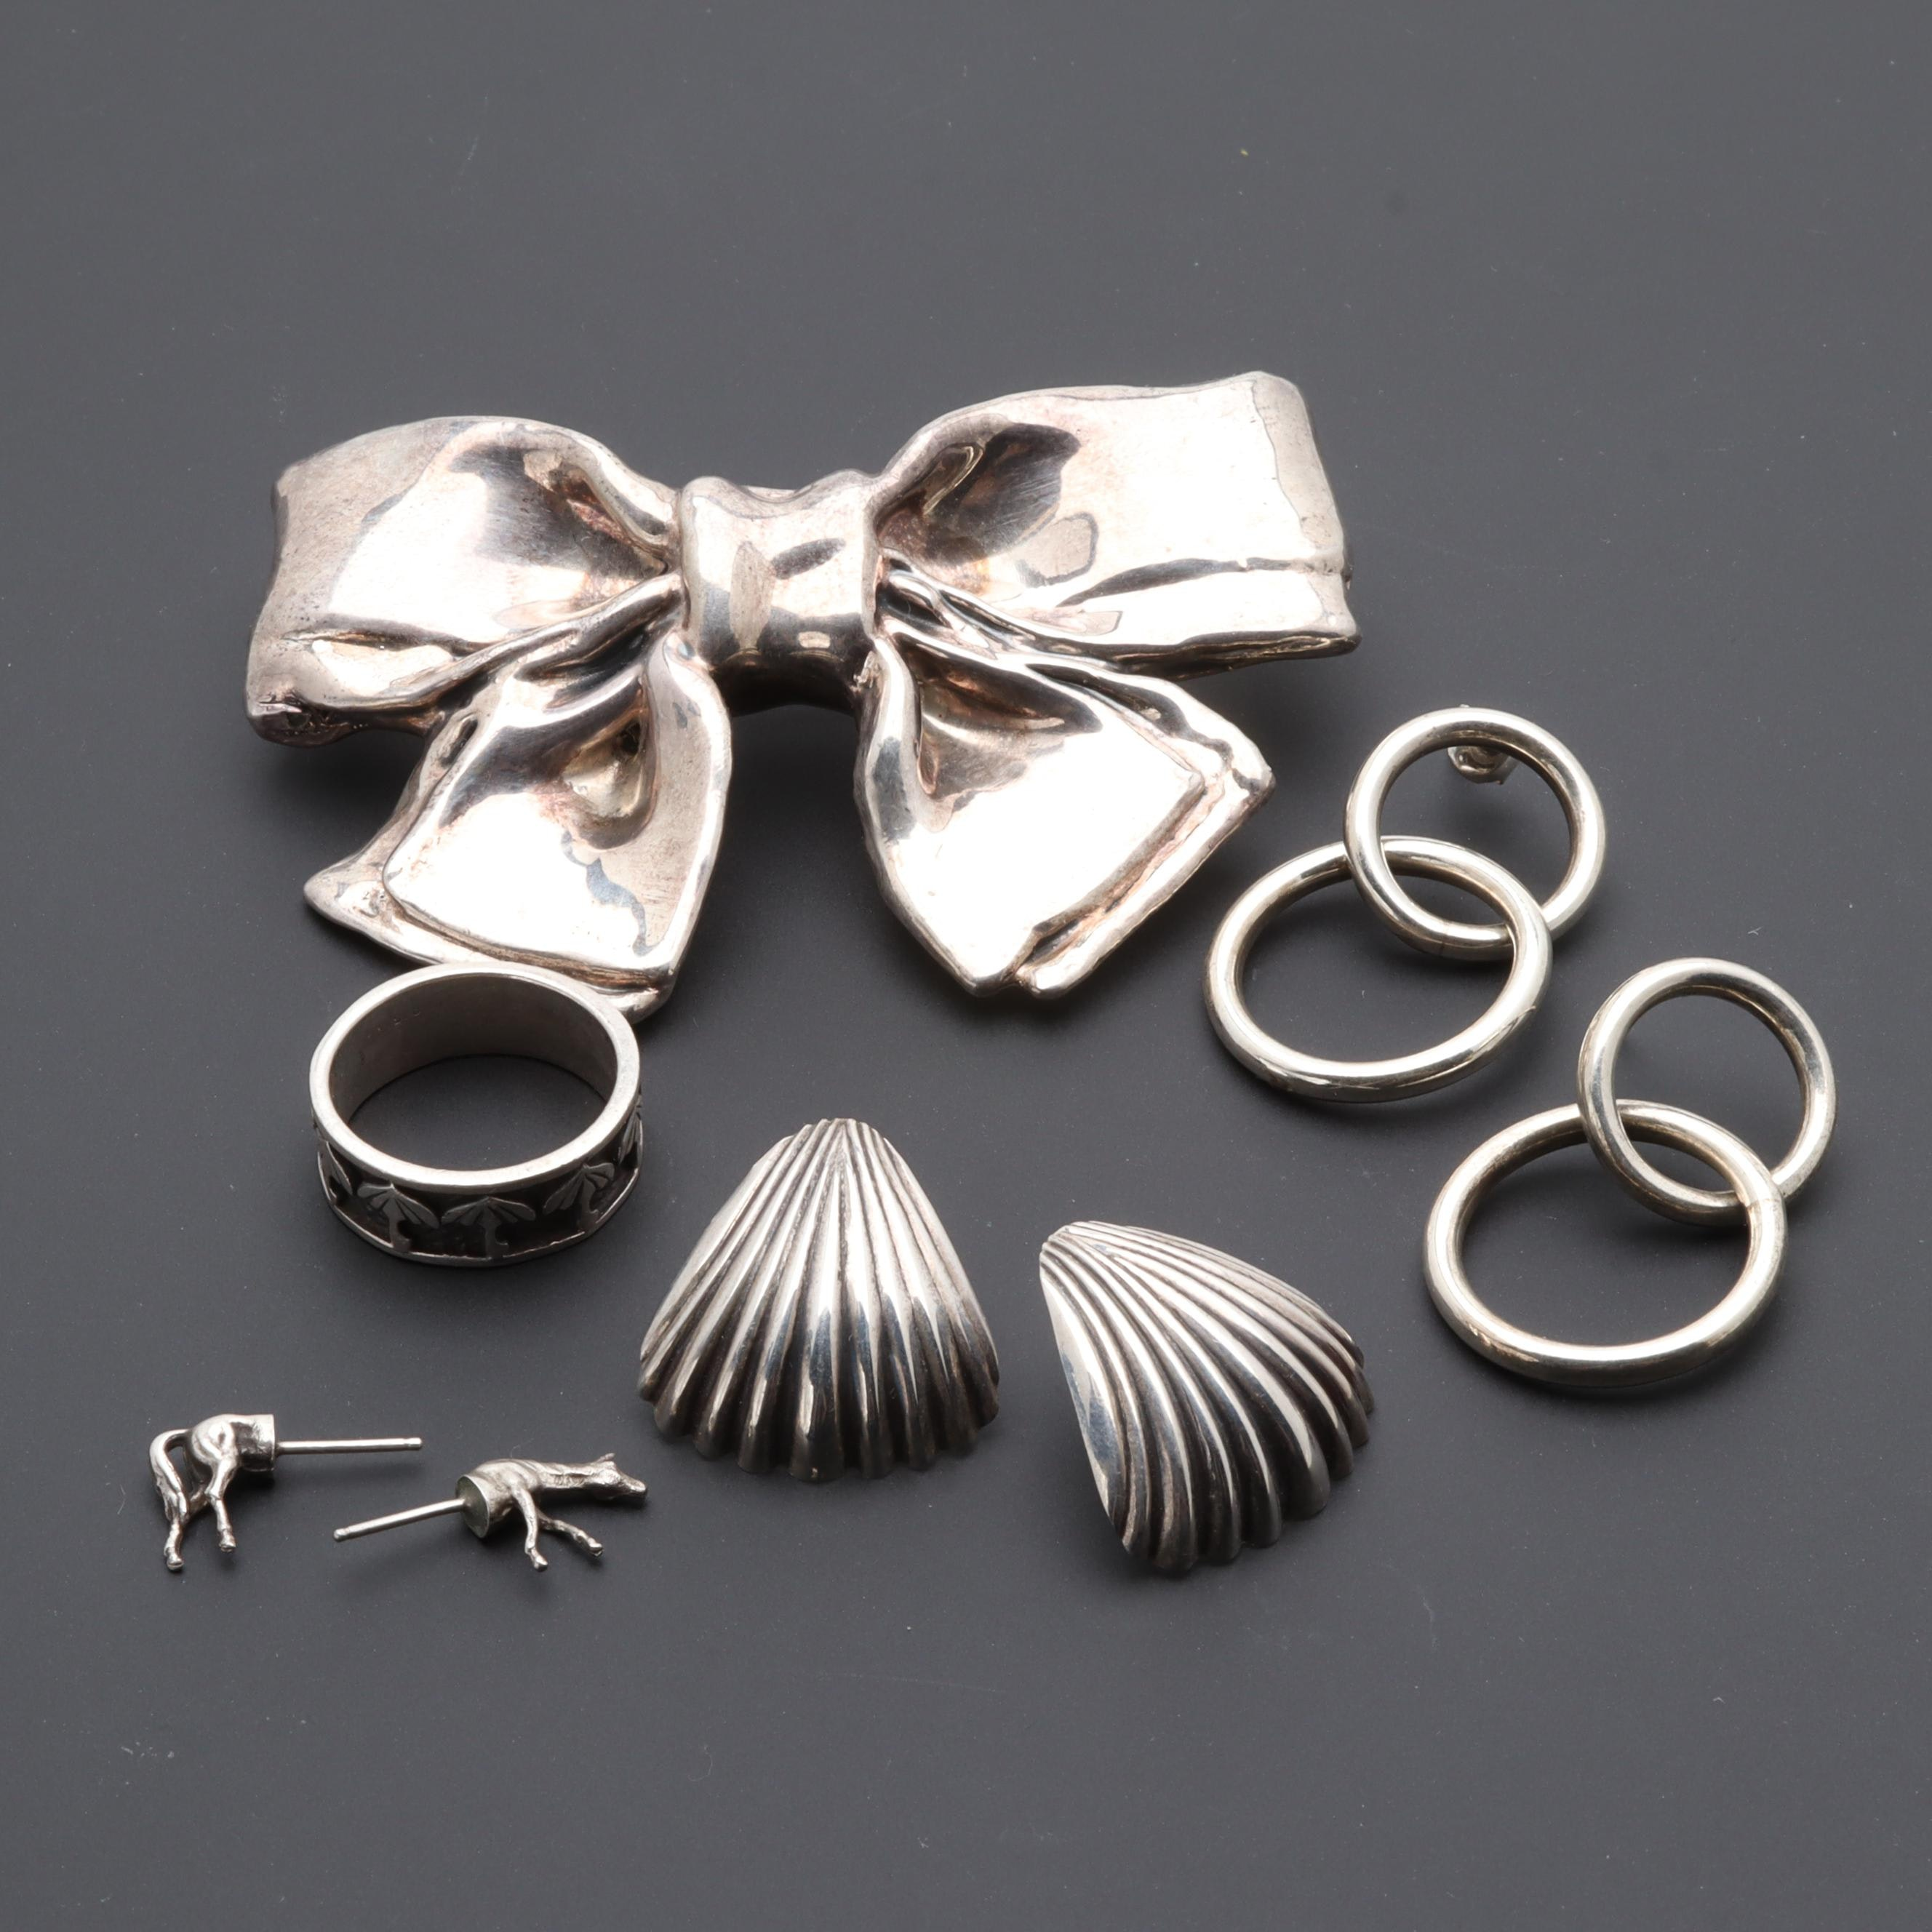 Sterling Silver Jewelry Collection Including Brooch, Earrings and Ring